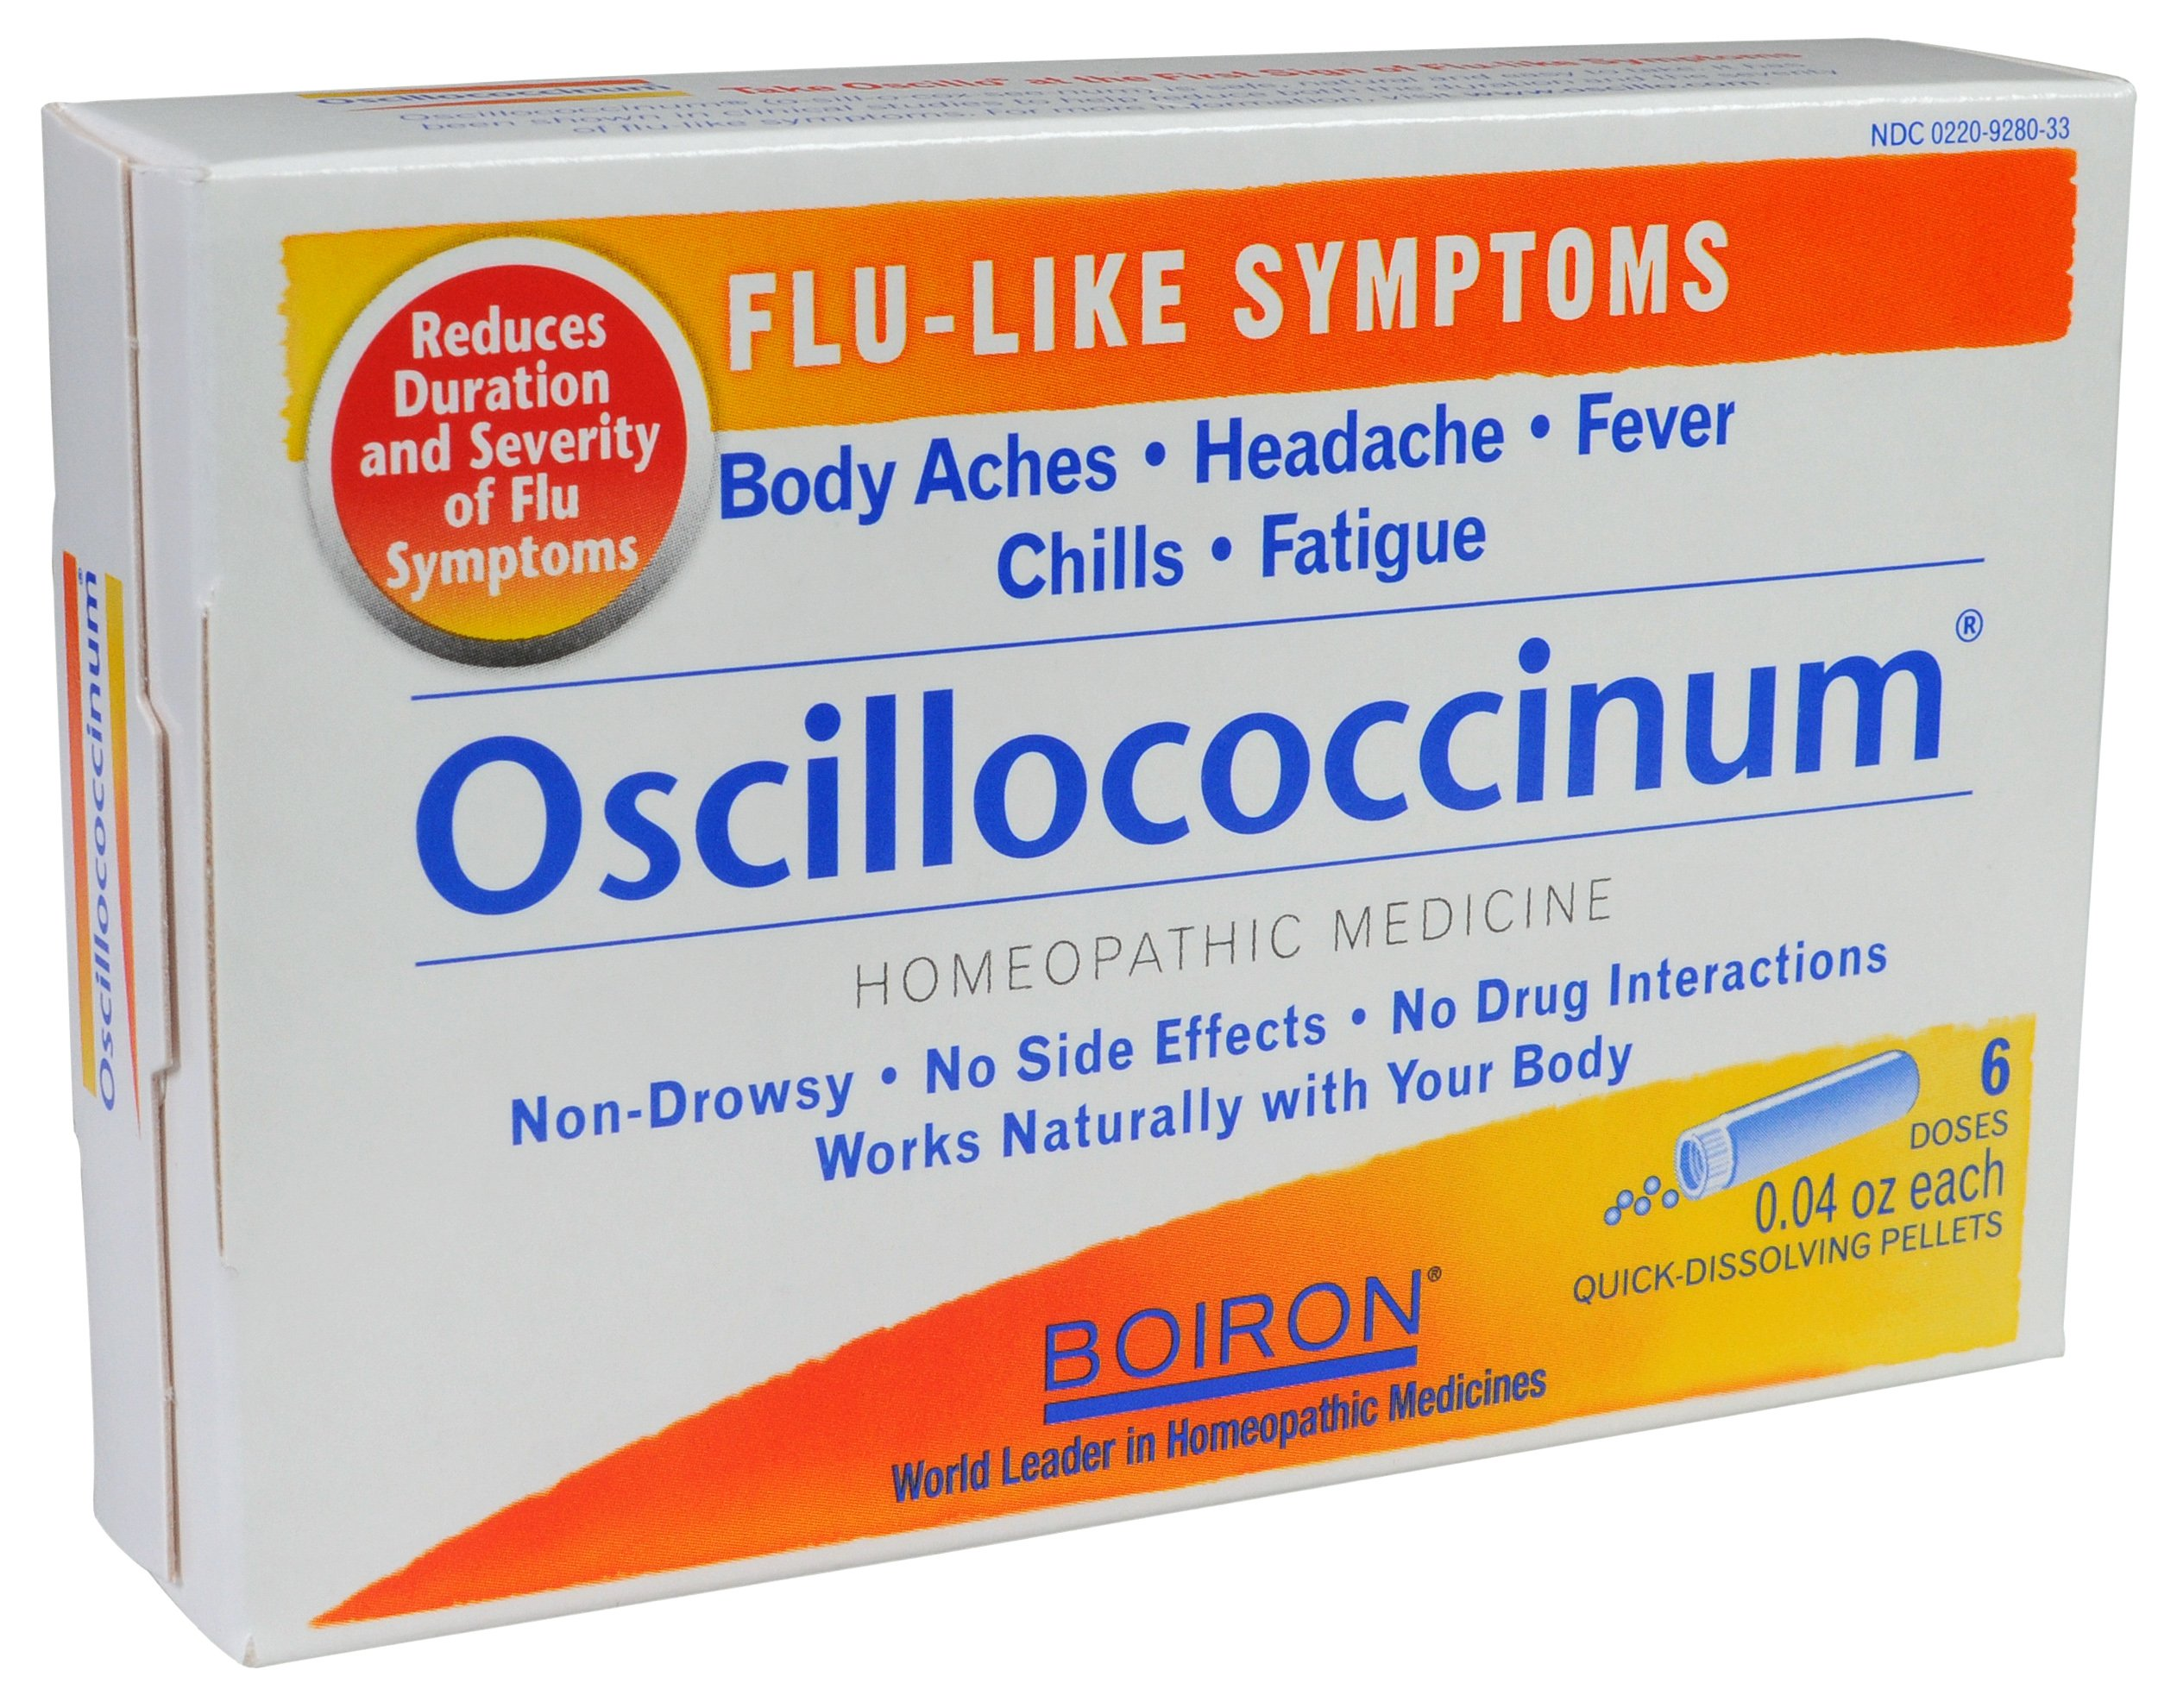 Boiron Oscillococcinum, 0.04 Ounce, 6 Doses (Pack of 2), Homeopathic Medicine for Flu-like Symptoms